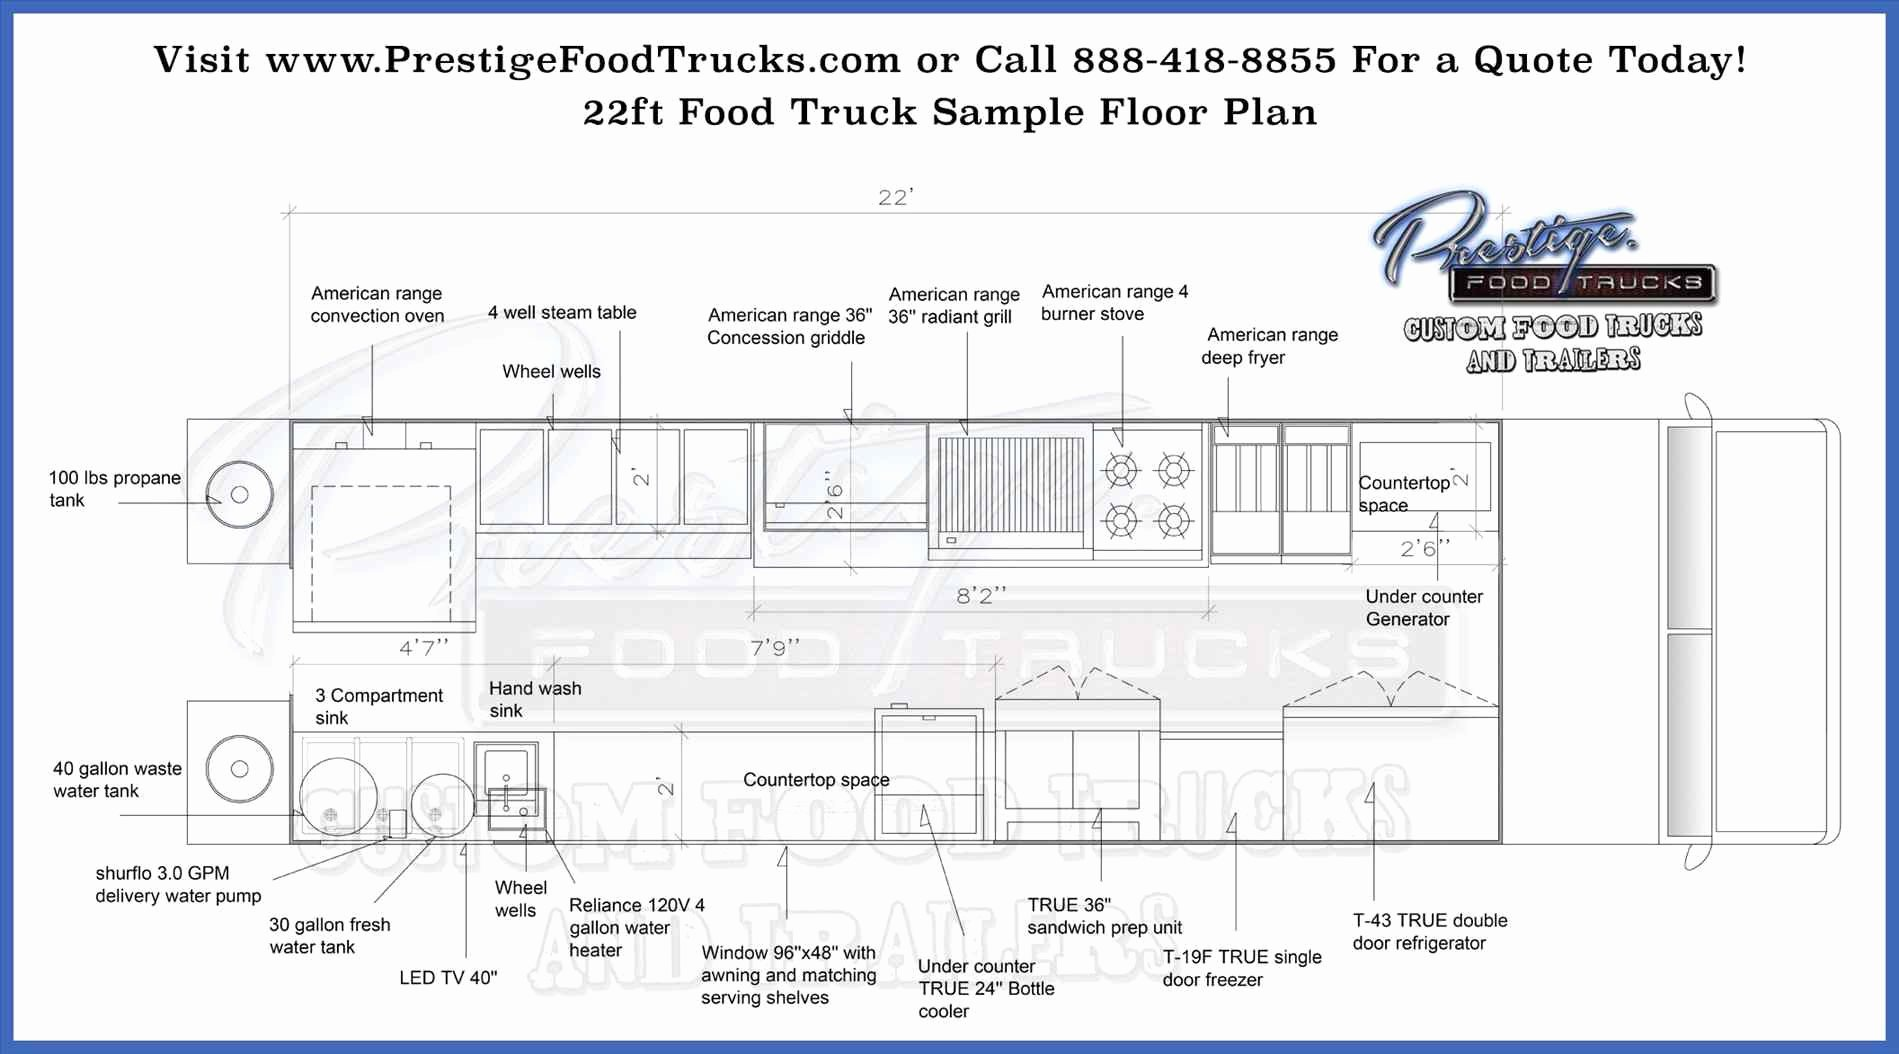 Food Truck Business Plan Template Fresh Food Truck Business Plan Template Free Arch Dsgn